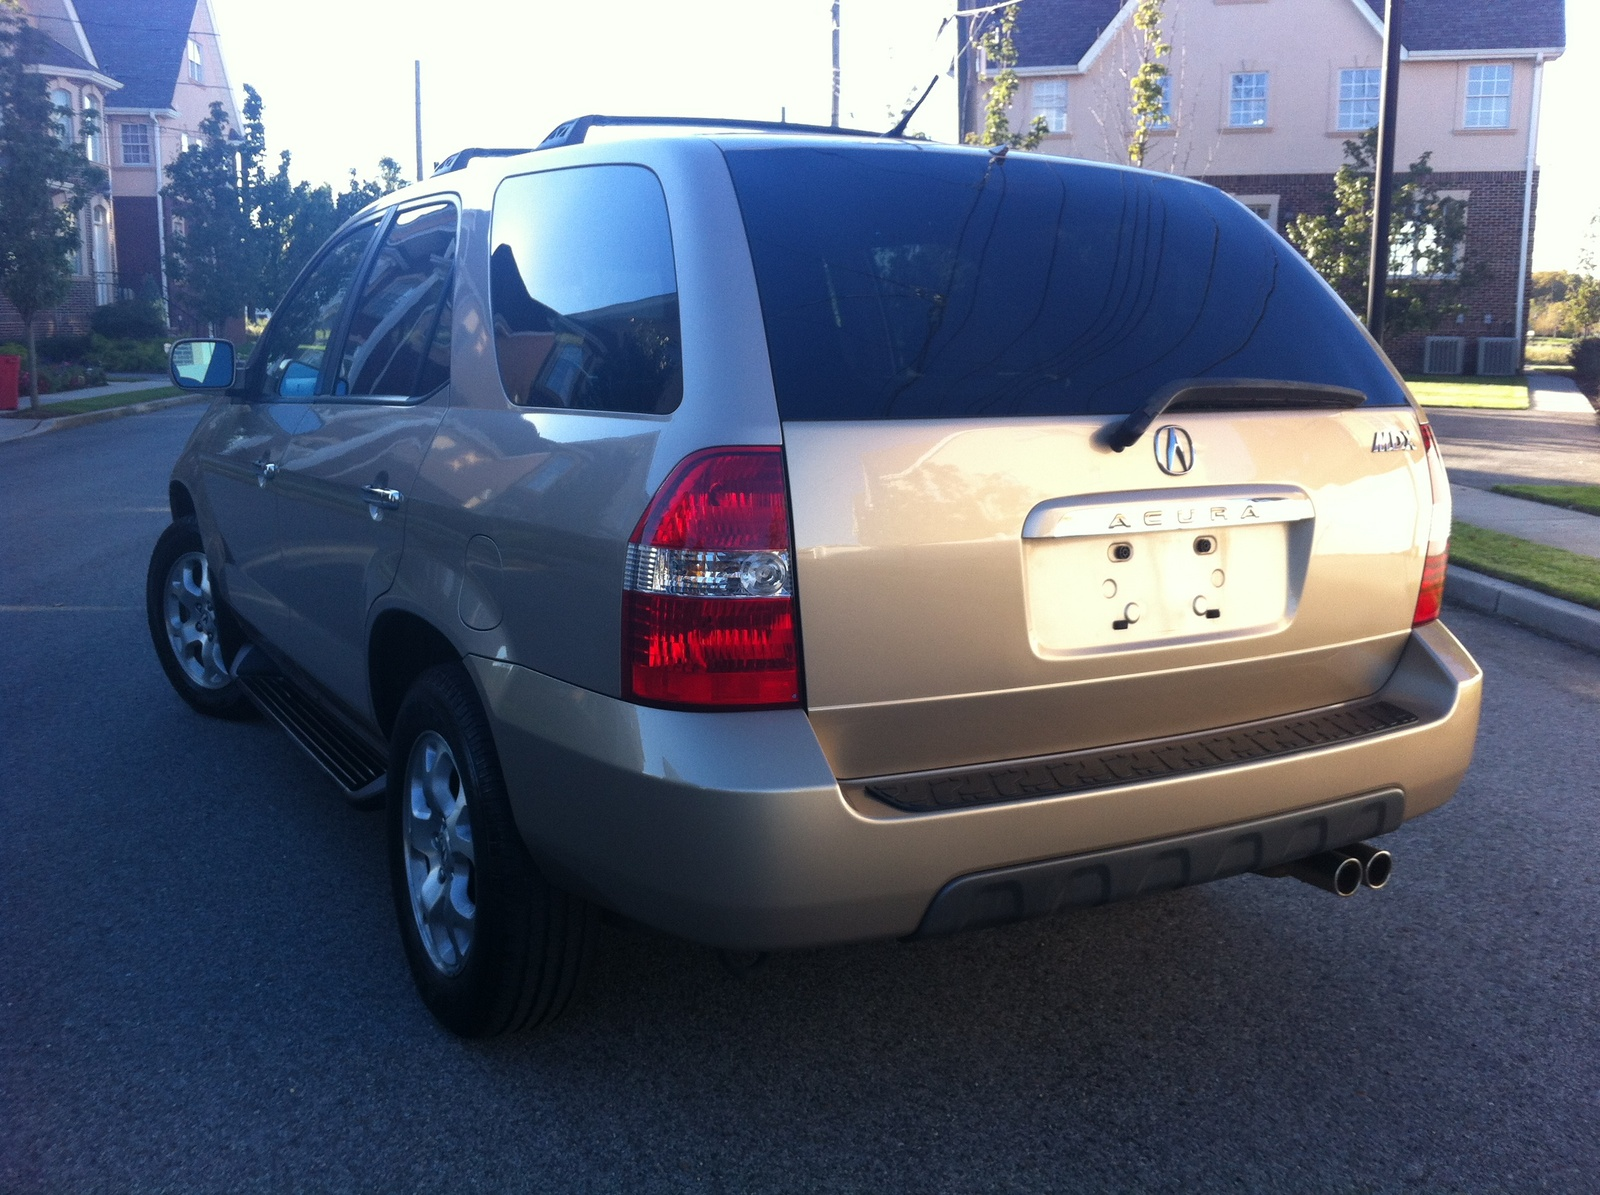 2002 Acura MDX - Pictures - Picture of 2002 Acura MDX Tour ...